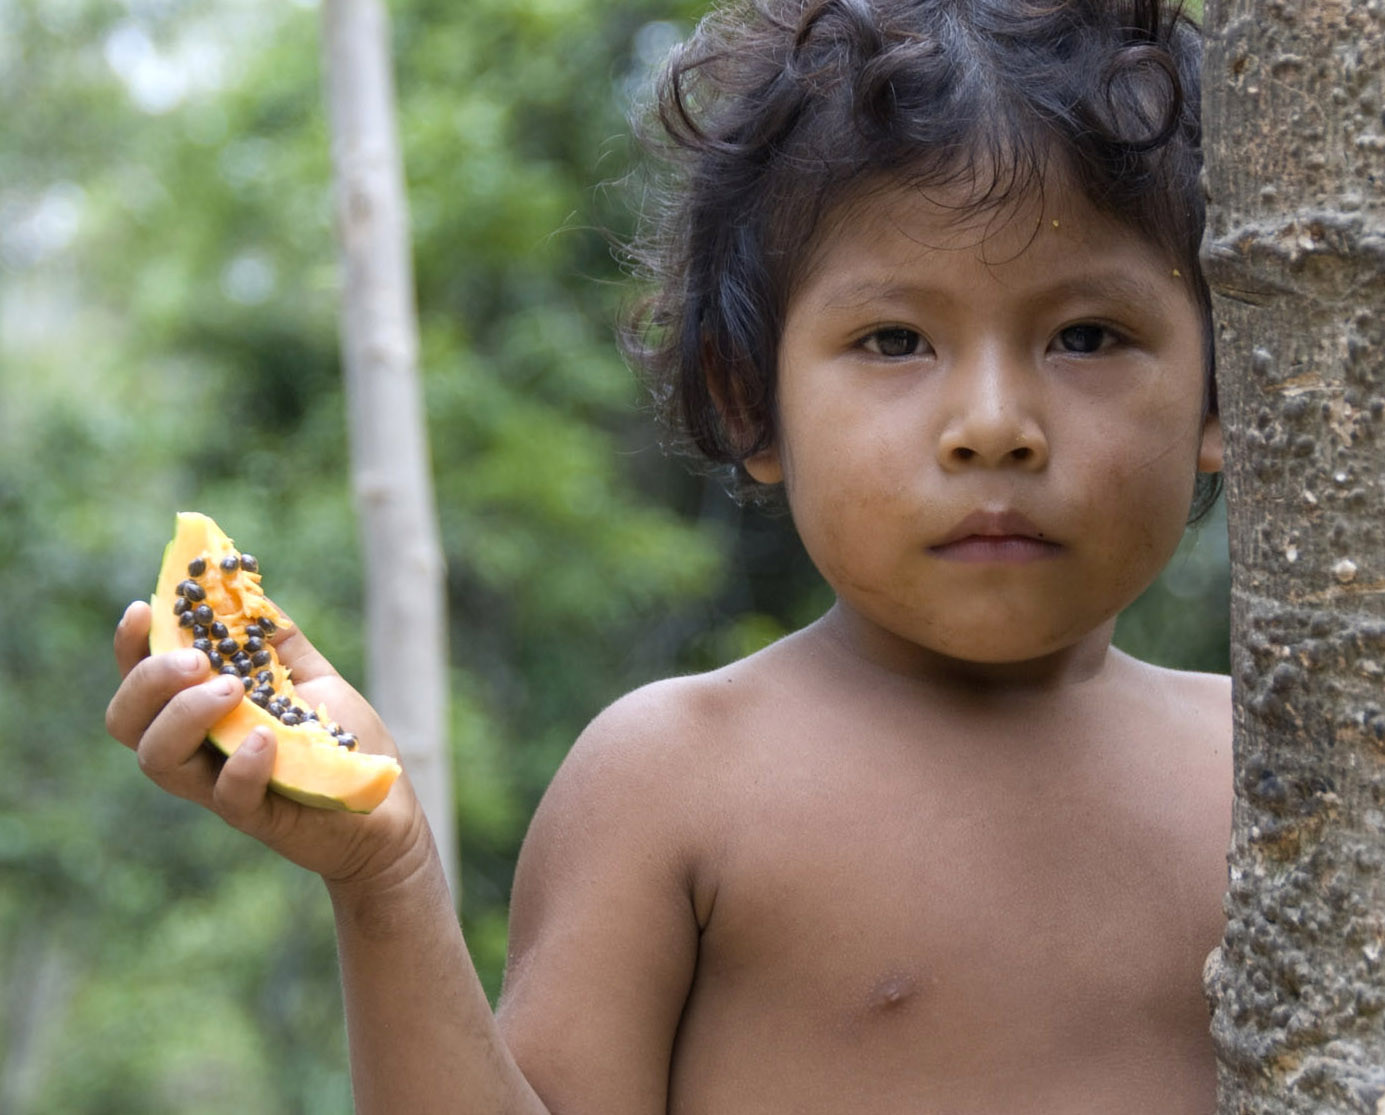 Brazils Army Moves To Protect Indigenous Aw Tribe By -1548